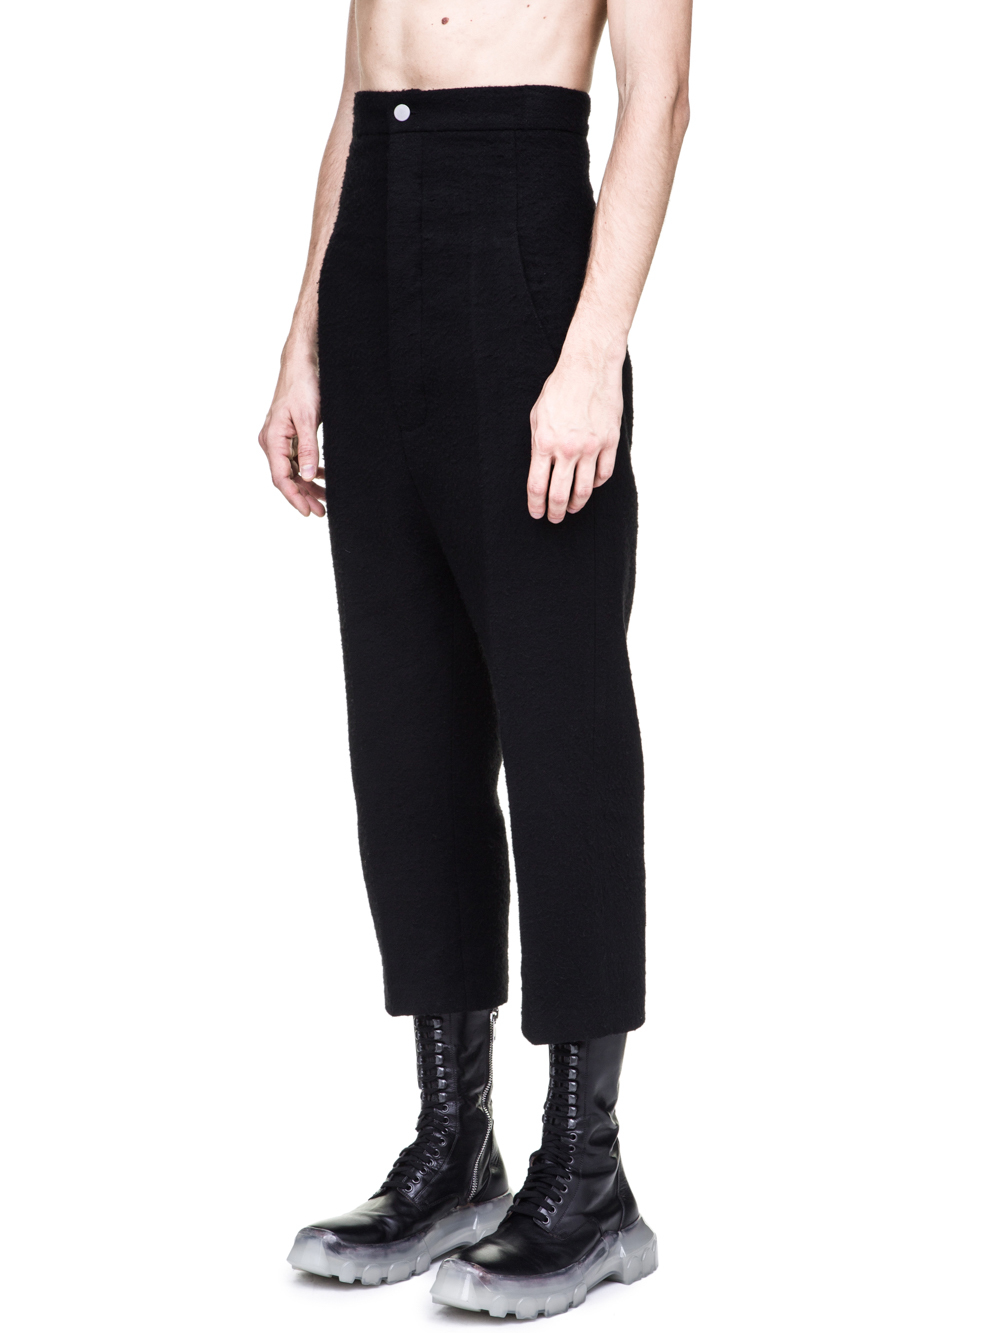 RICK OWENS OFF-THE-RUNWAY DIRT JEANS IN BLACK CAMEL WOOL ARE EXTREMELY HIGH-WAISTED